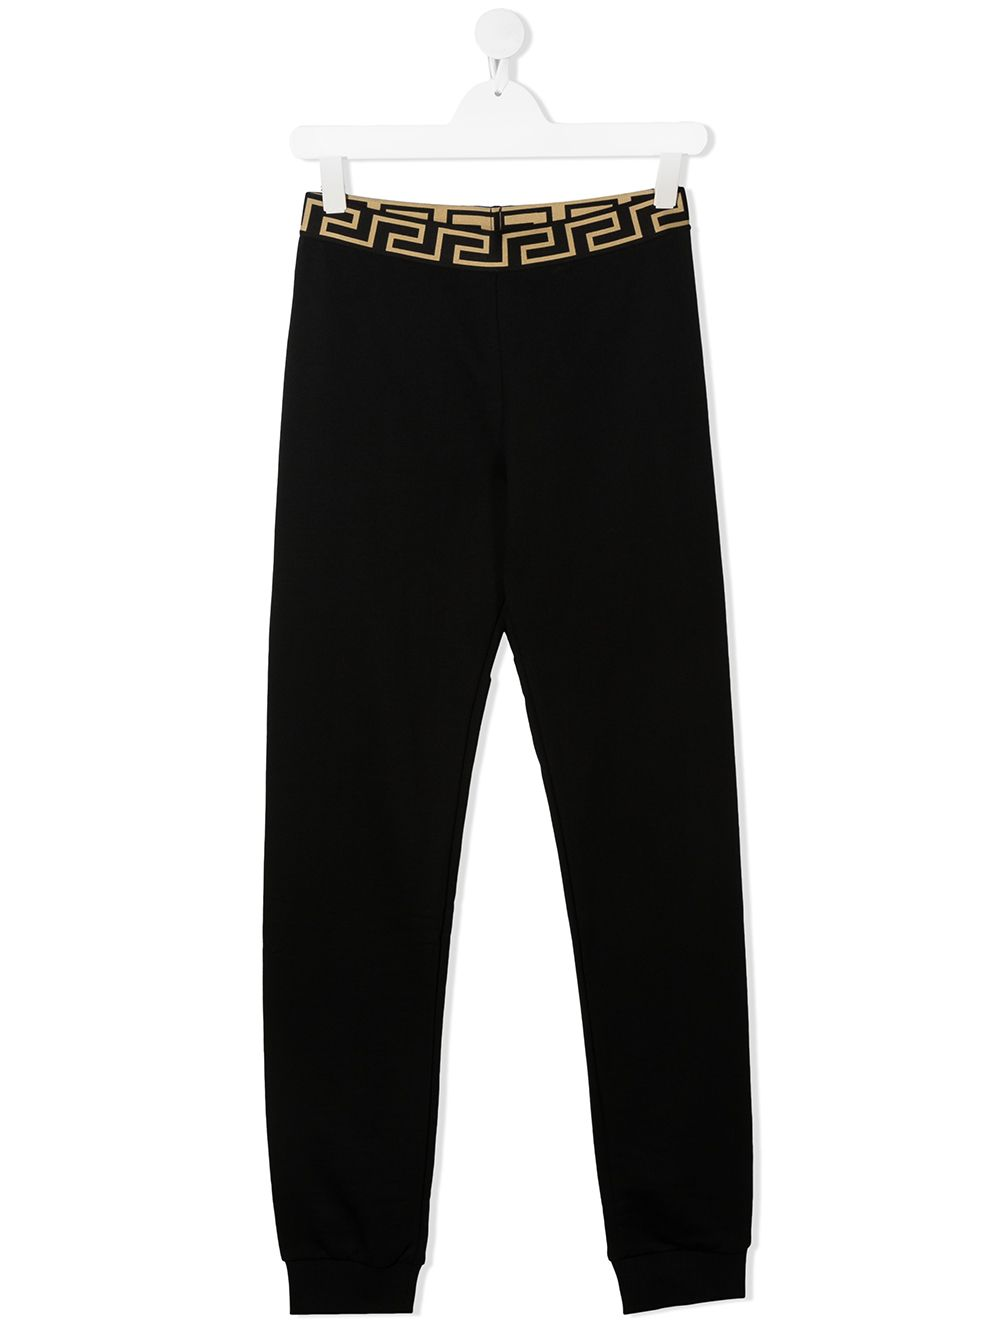 VERSACE KIDS Waistband Logo Track Pants Black - Maison De Fashion